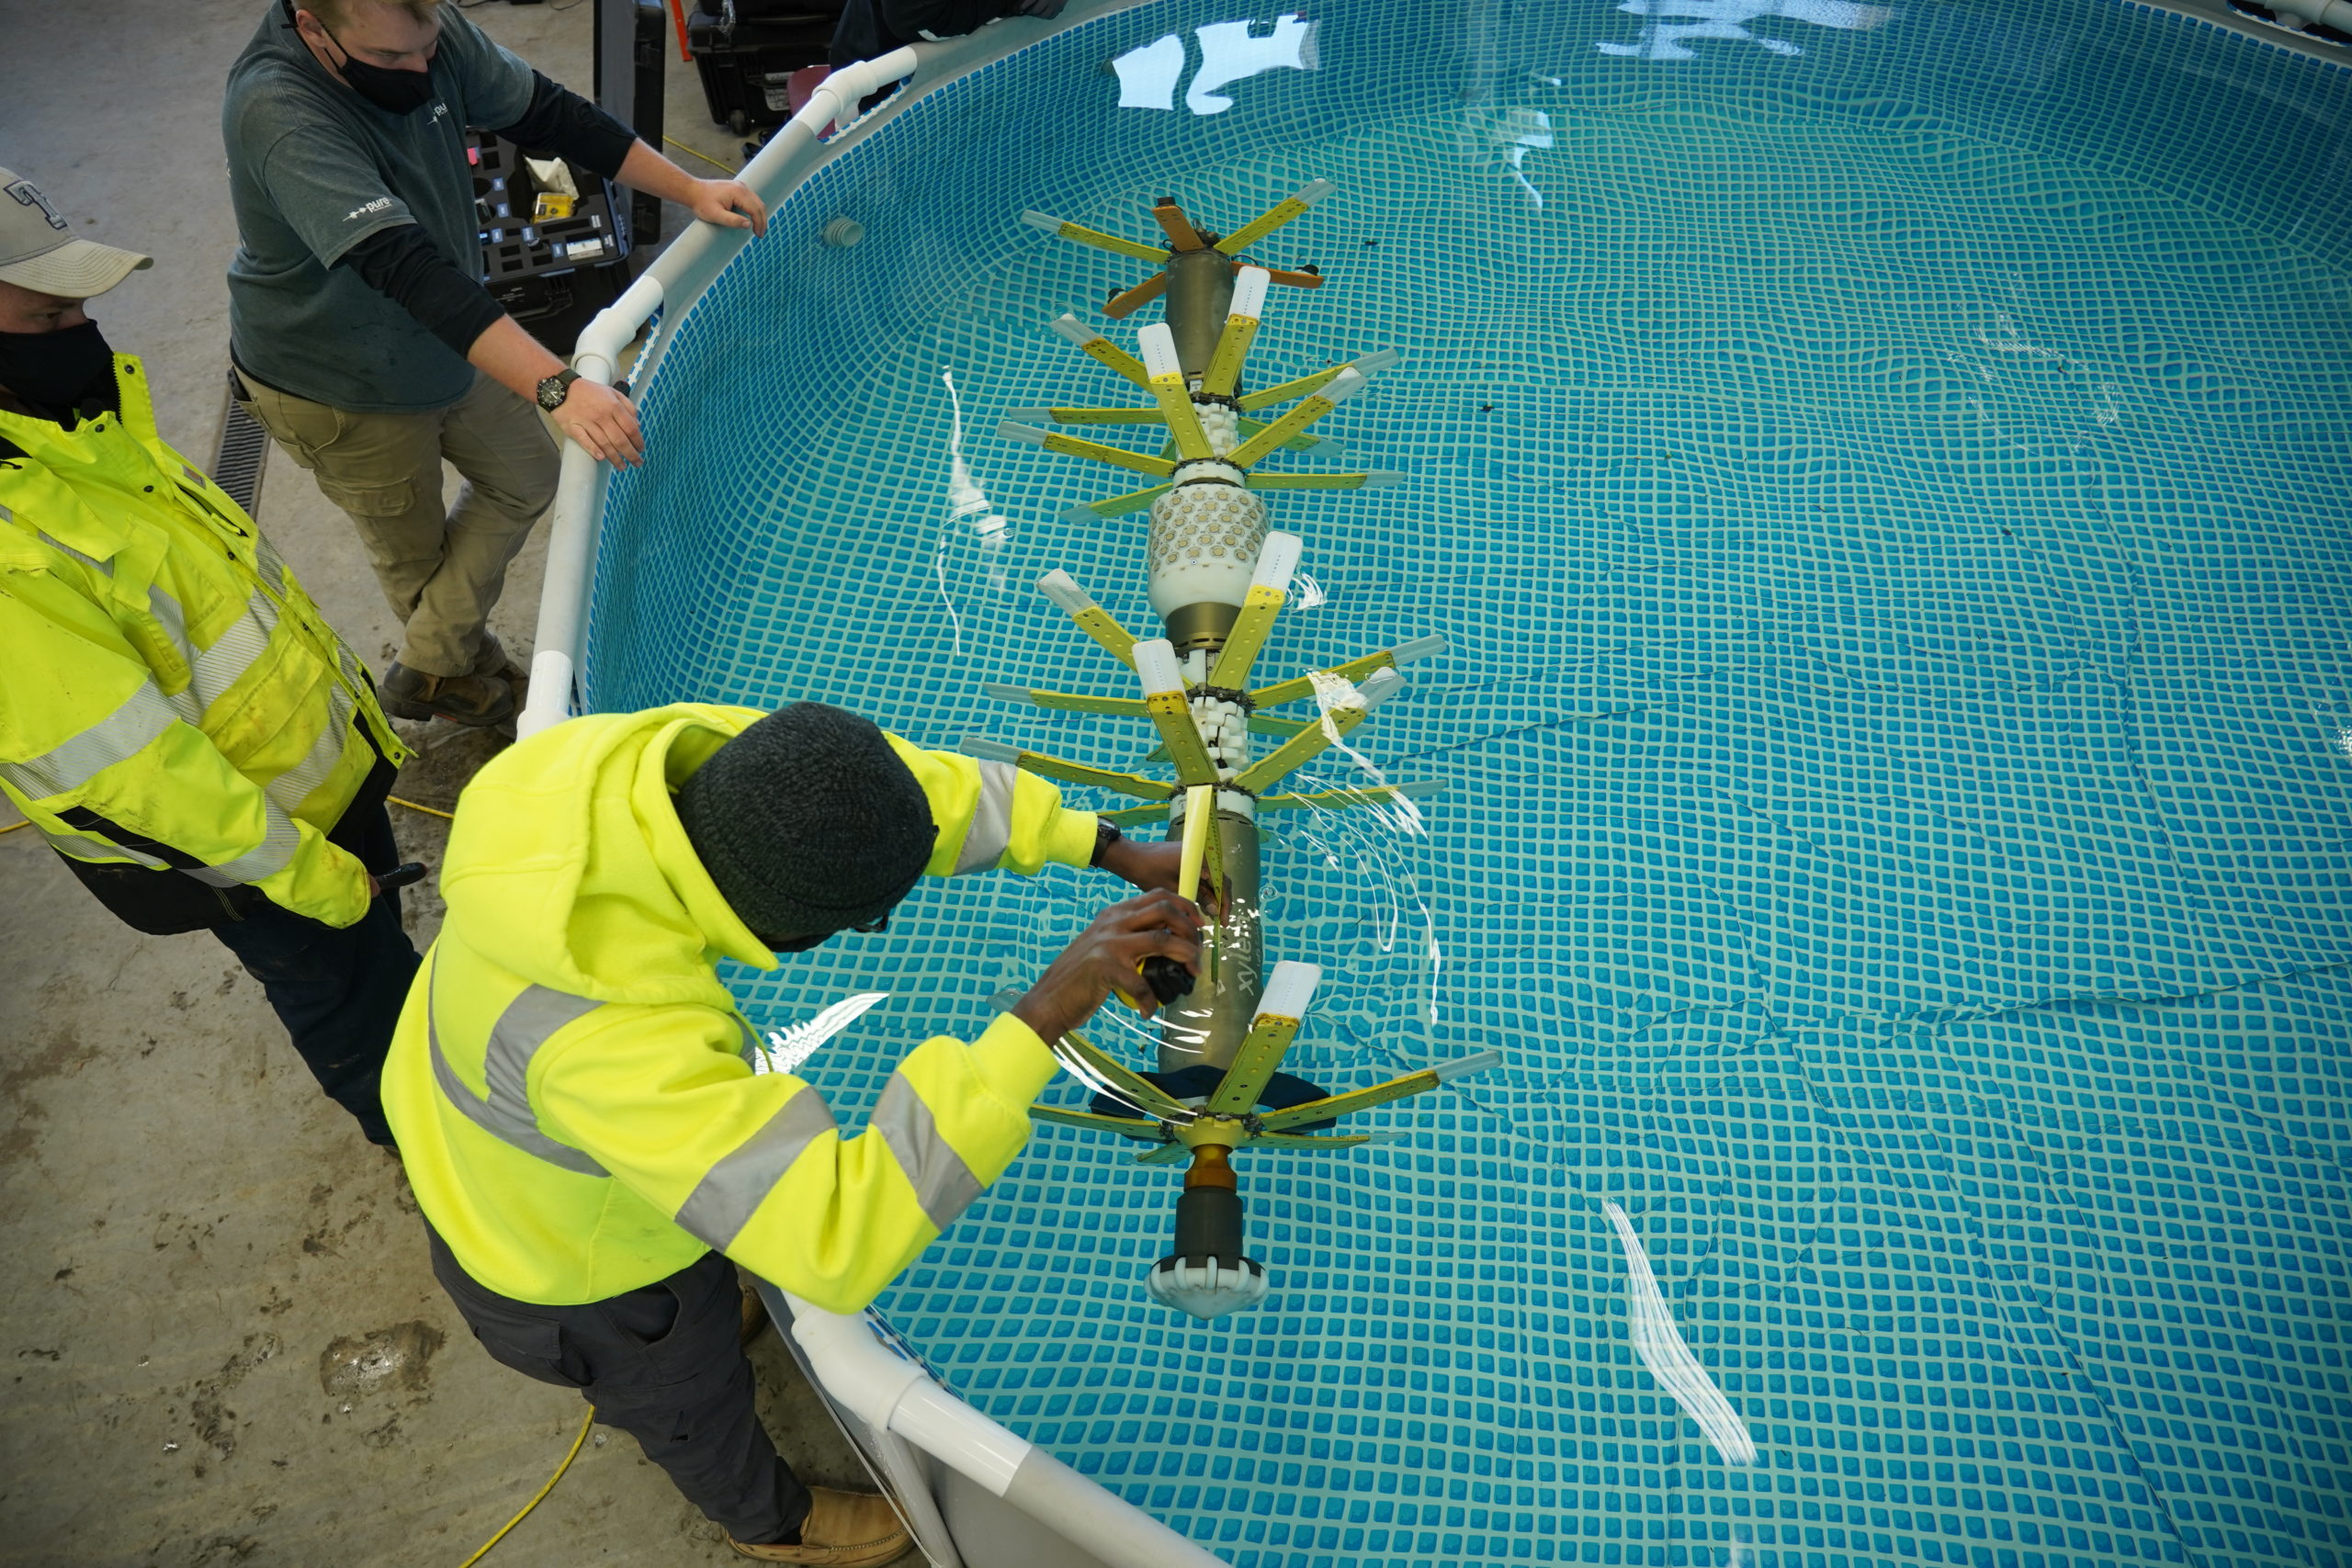 A Pure Technologies worker checks the balance of the PipeDiver in a pool before inspection. Photo credit: Denver Water.